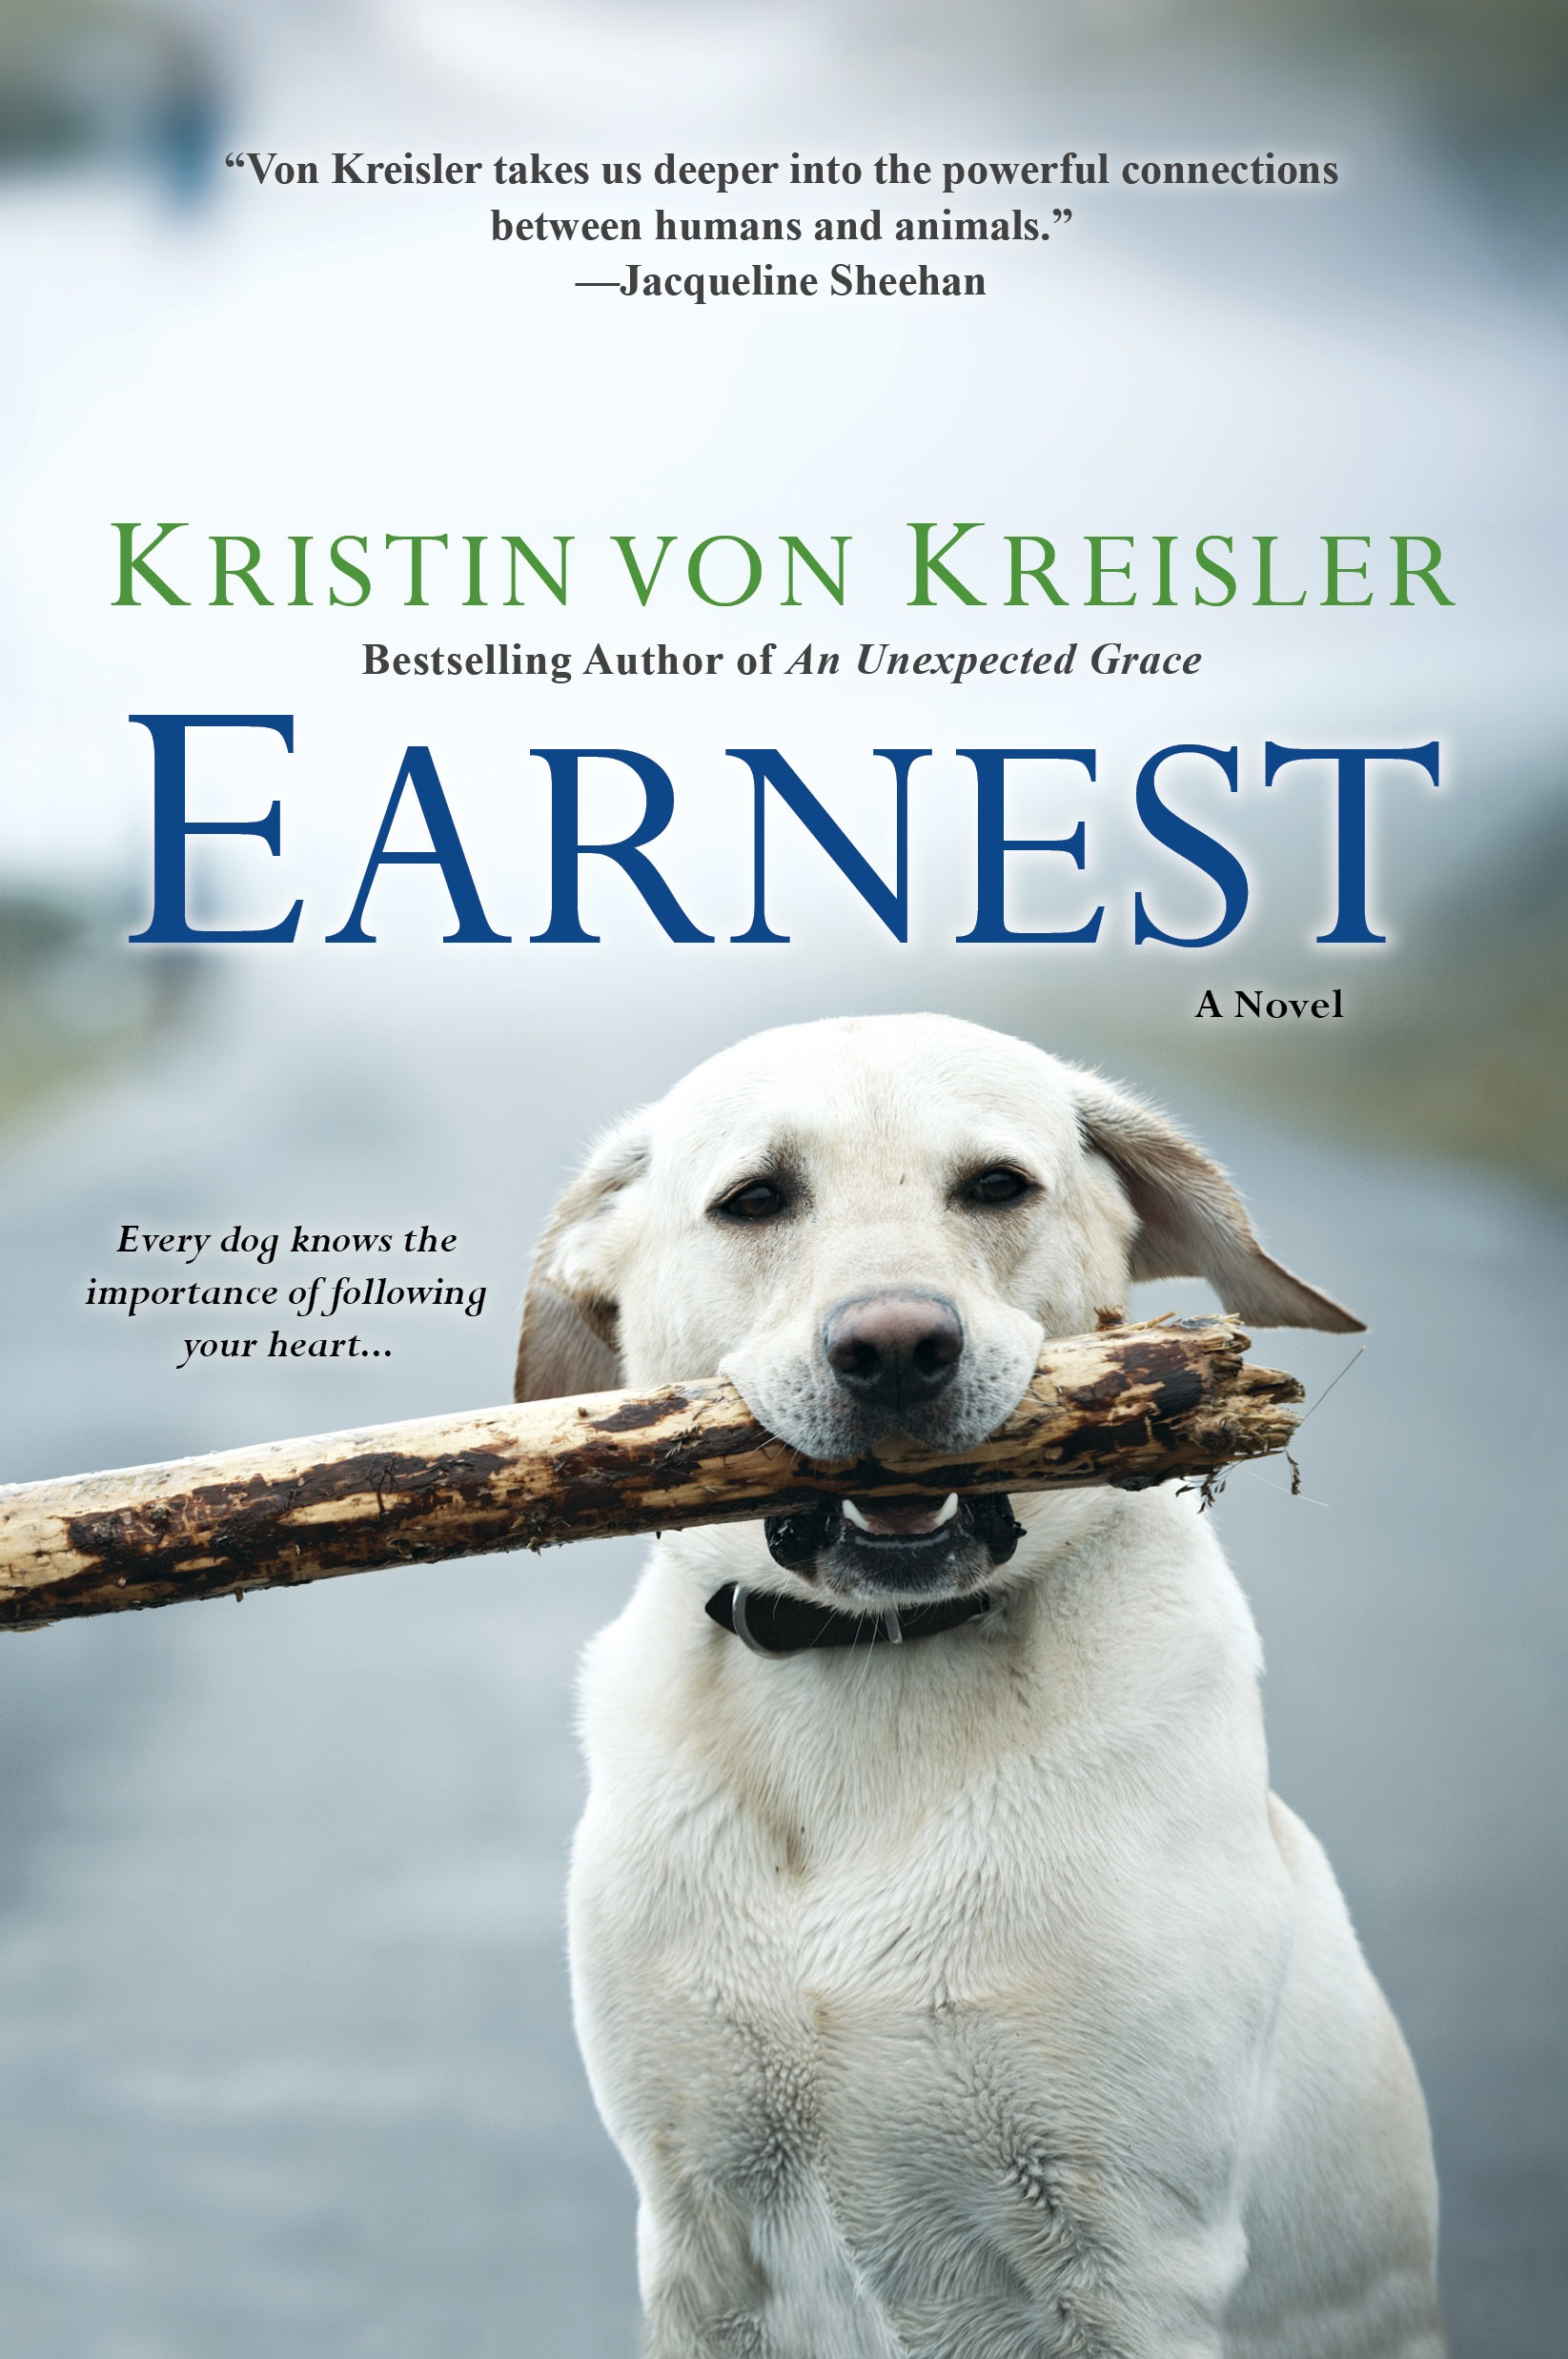 Earnest by Kristin von Kreisler